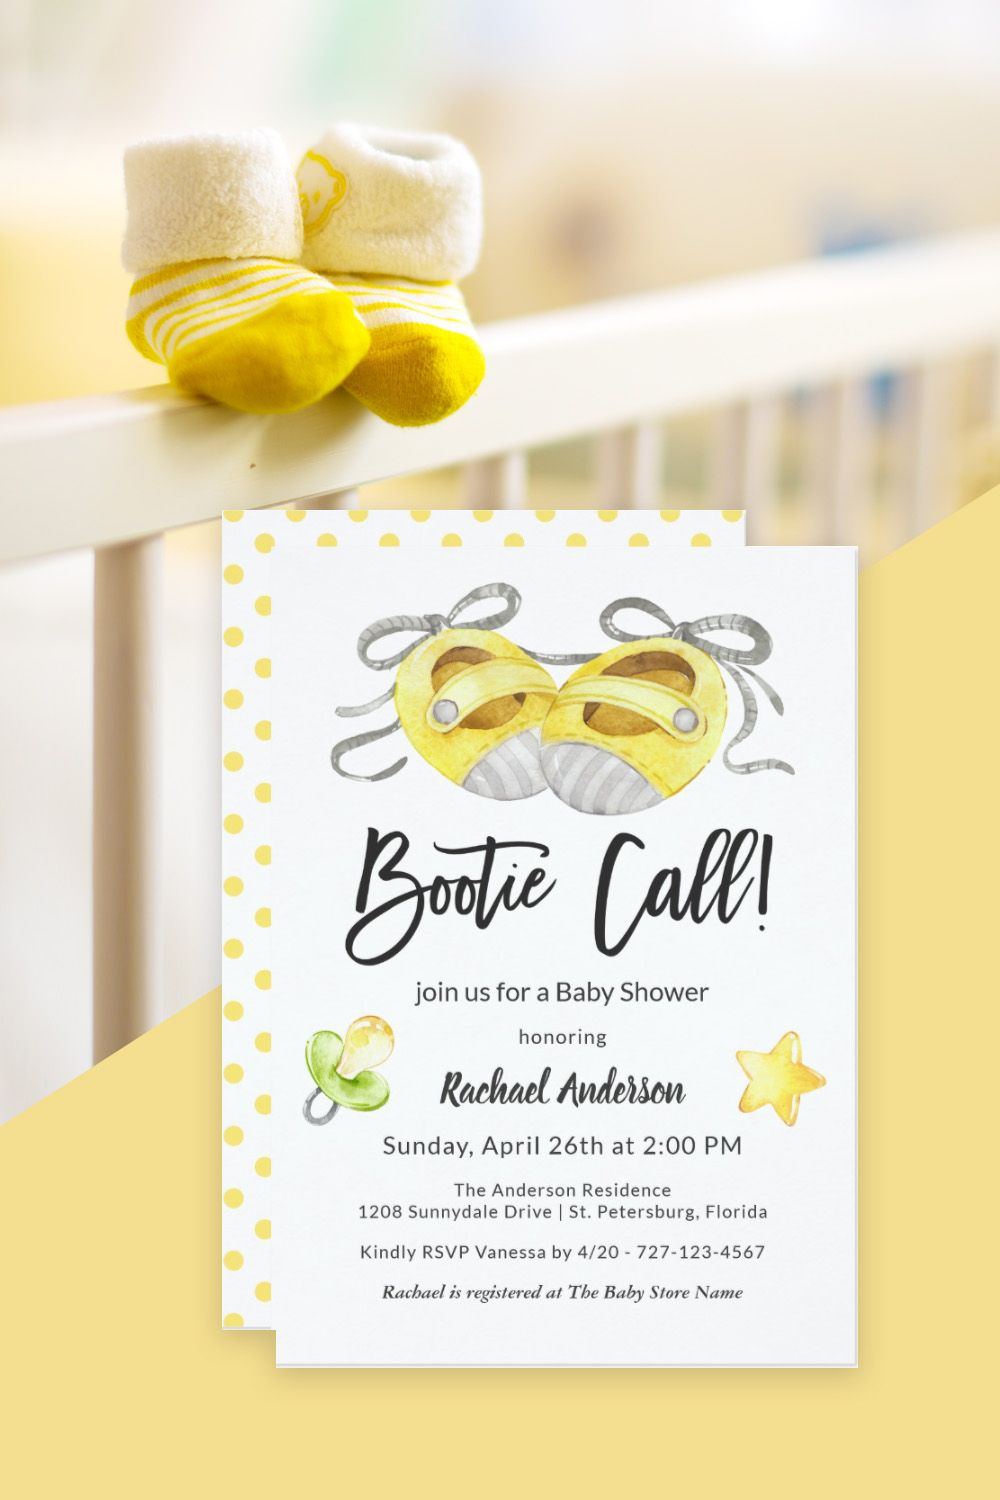 Bootie Call Whimsical Yellow Baby Shower Invitation Zazzle Com